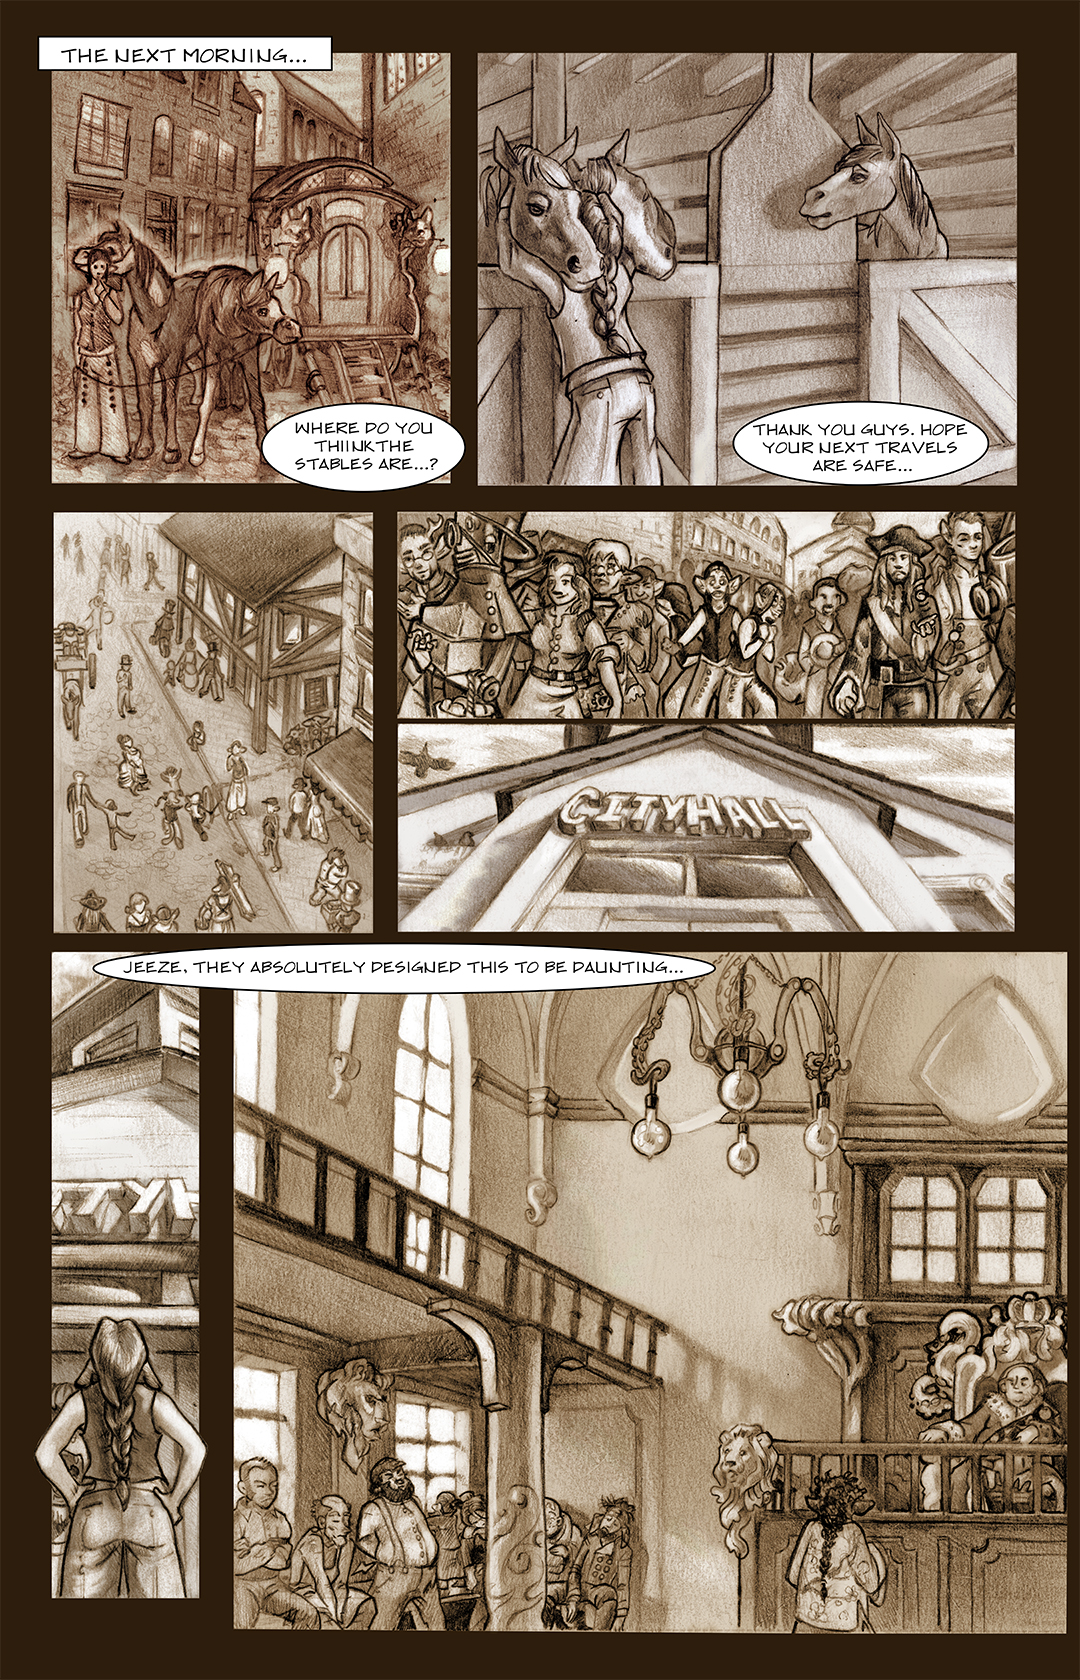 Pg. 2. Discovering the town...